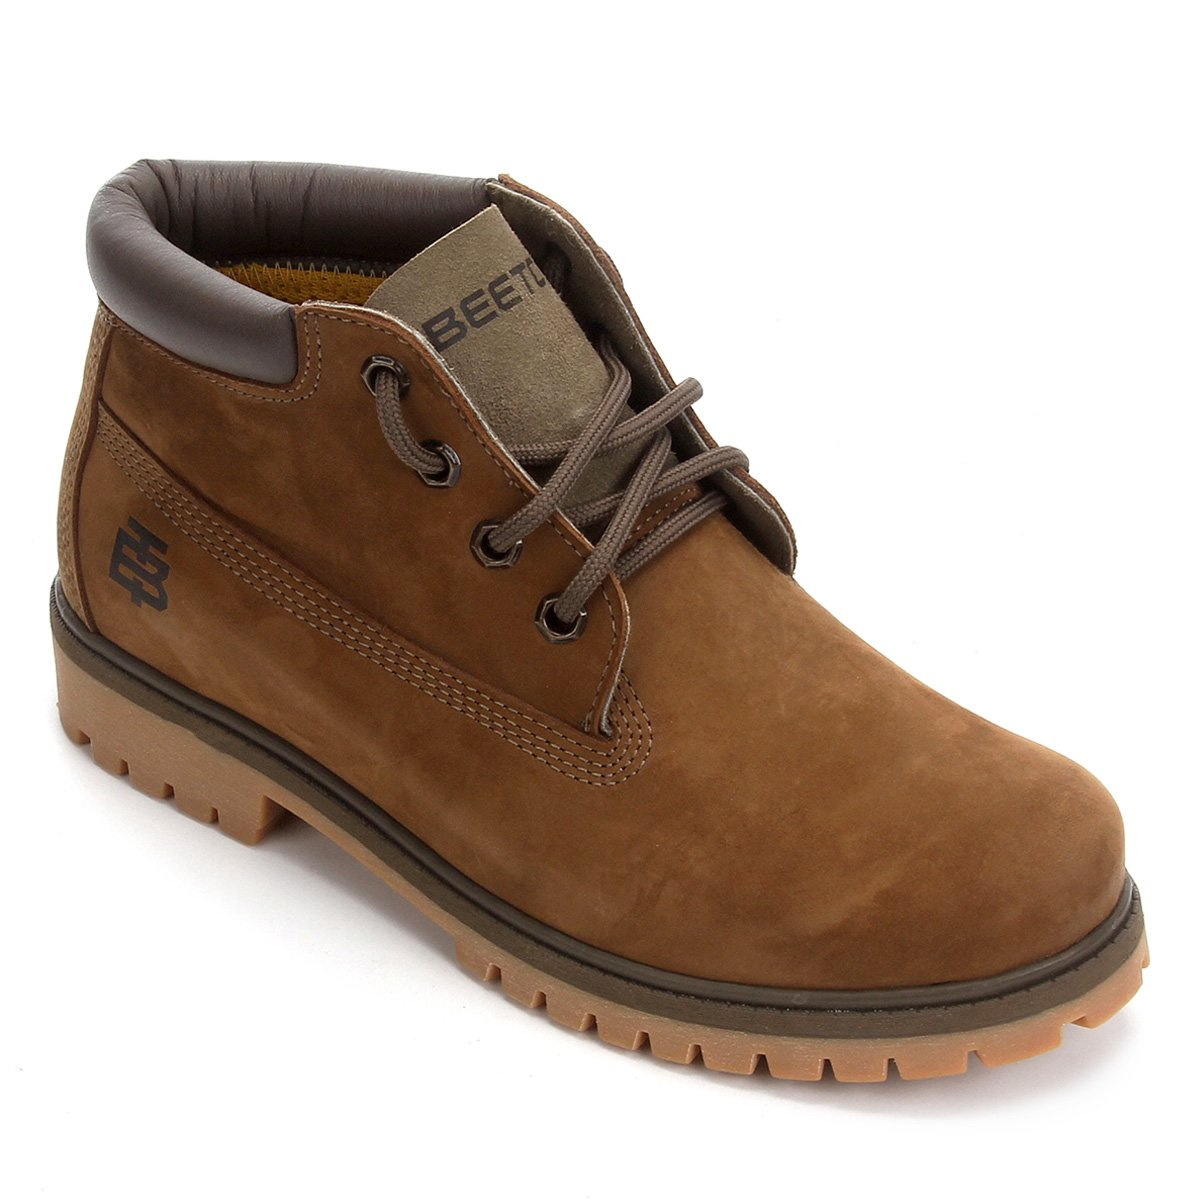 Bota Beeton Yellow Boot Strong 415 Masculina